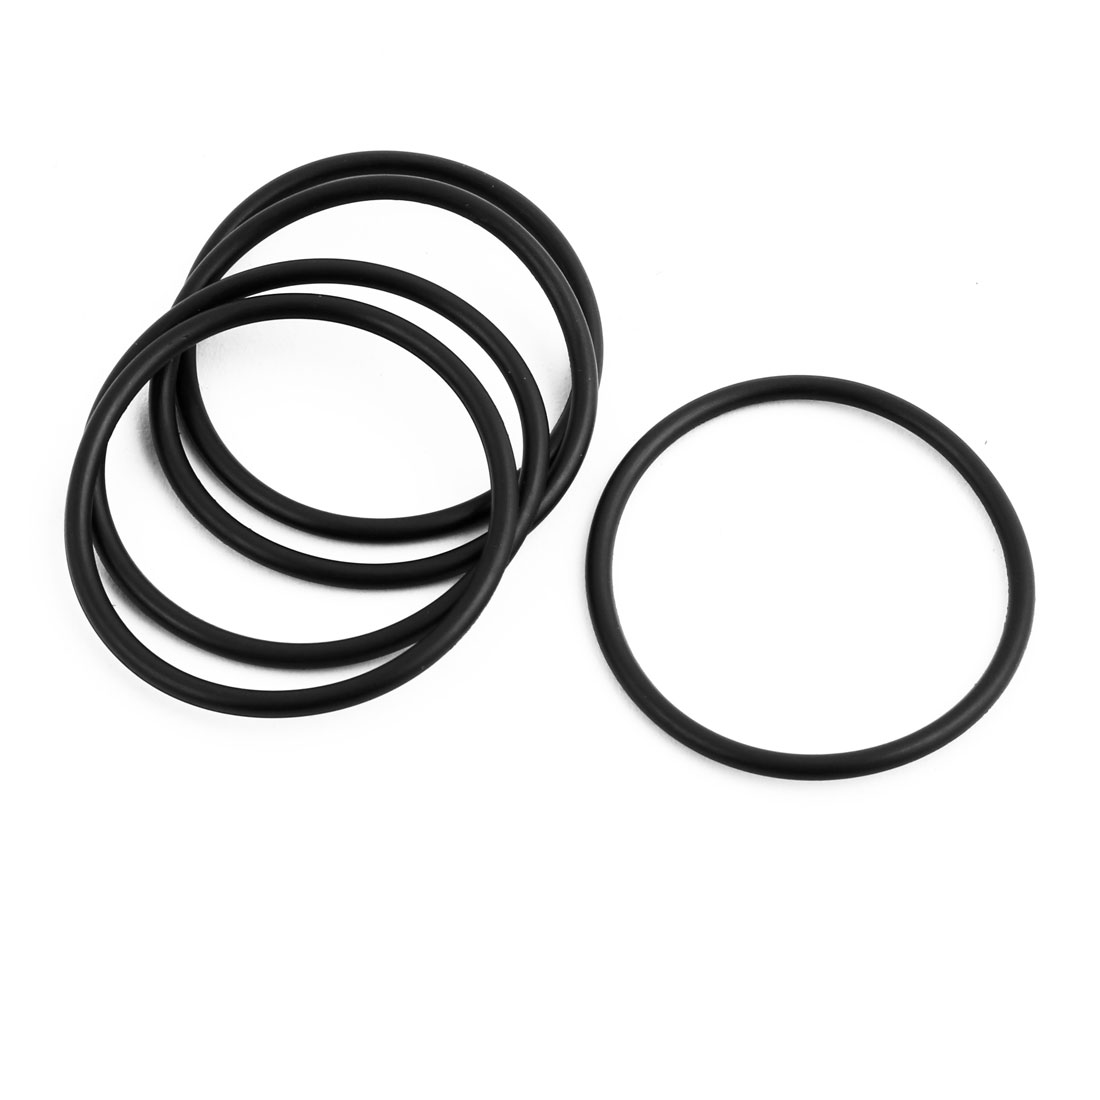 5Pcs Black 33 x 2mm Industrial Flexible Rubber O Ring Oil Sealing Grommets